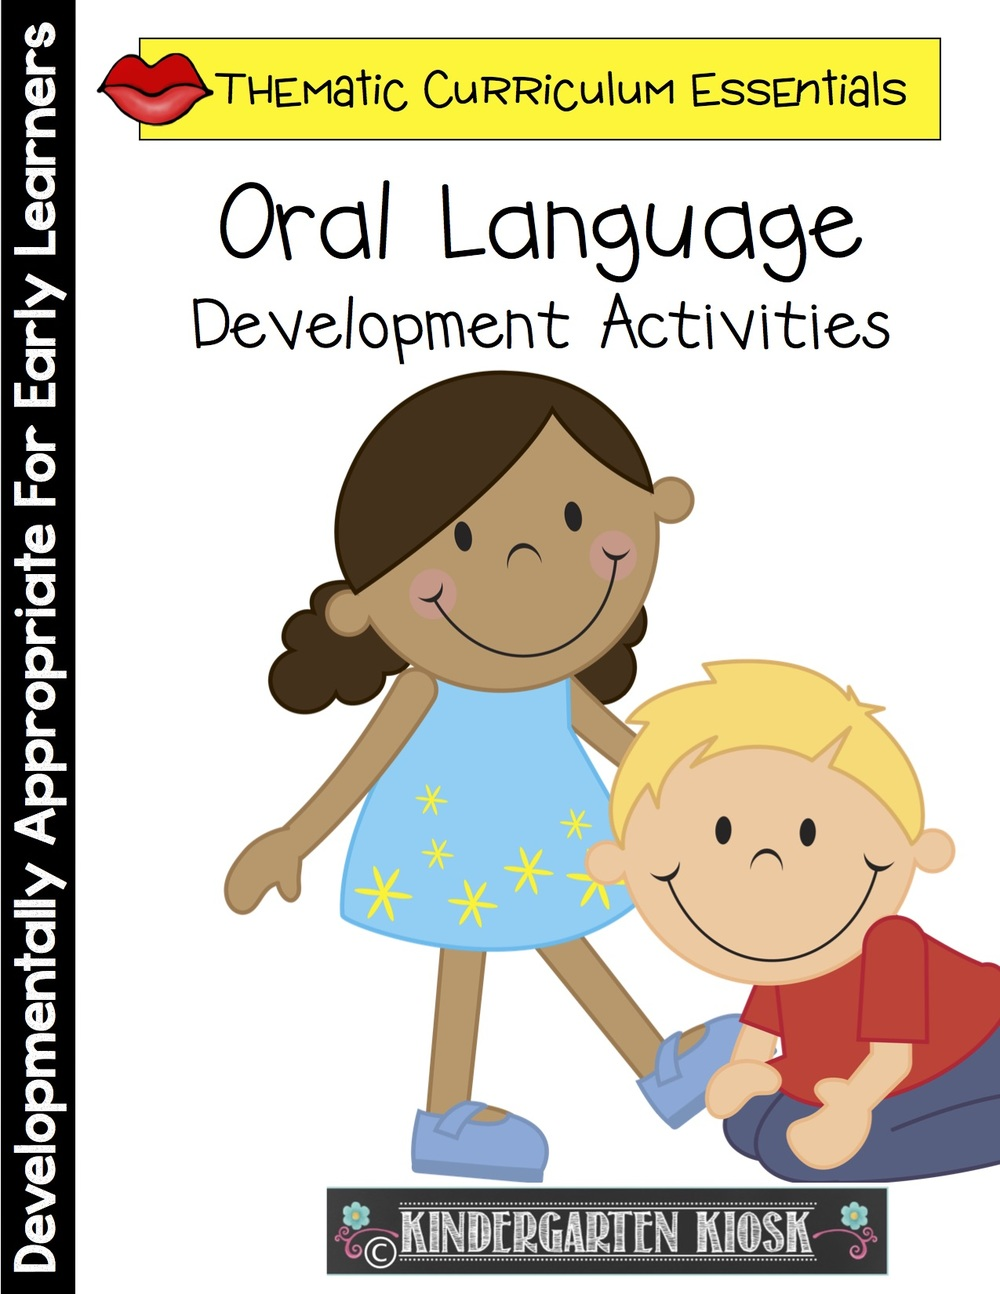 activities to promote language development in preschoolers pdf